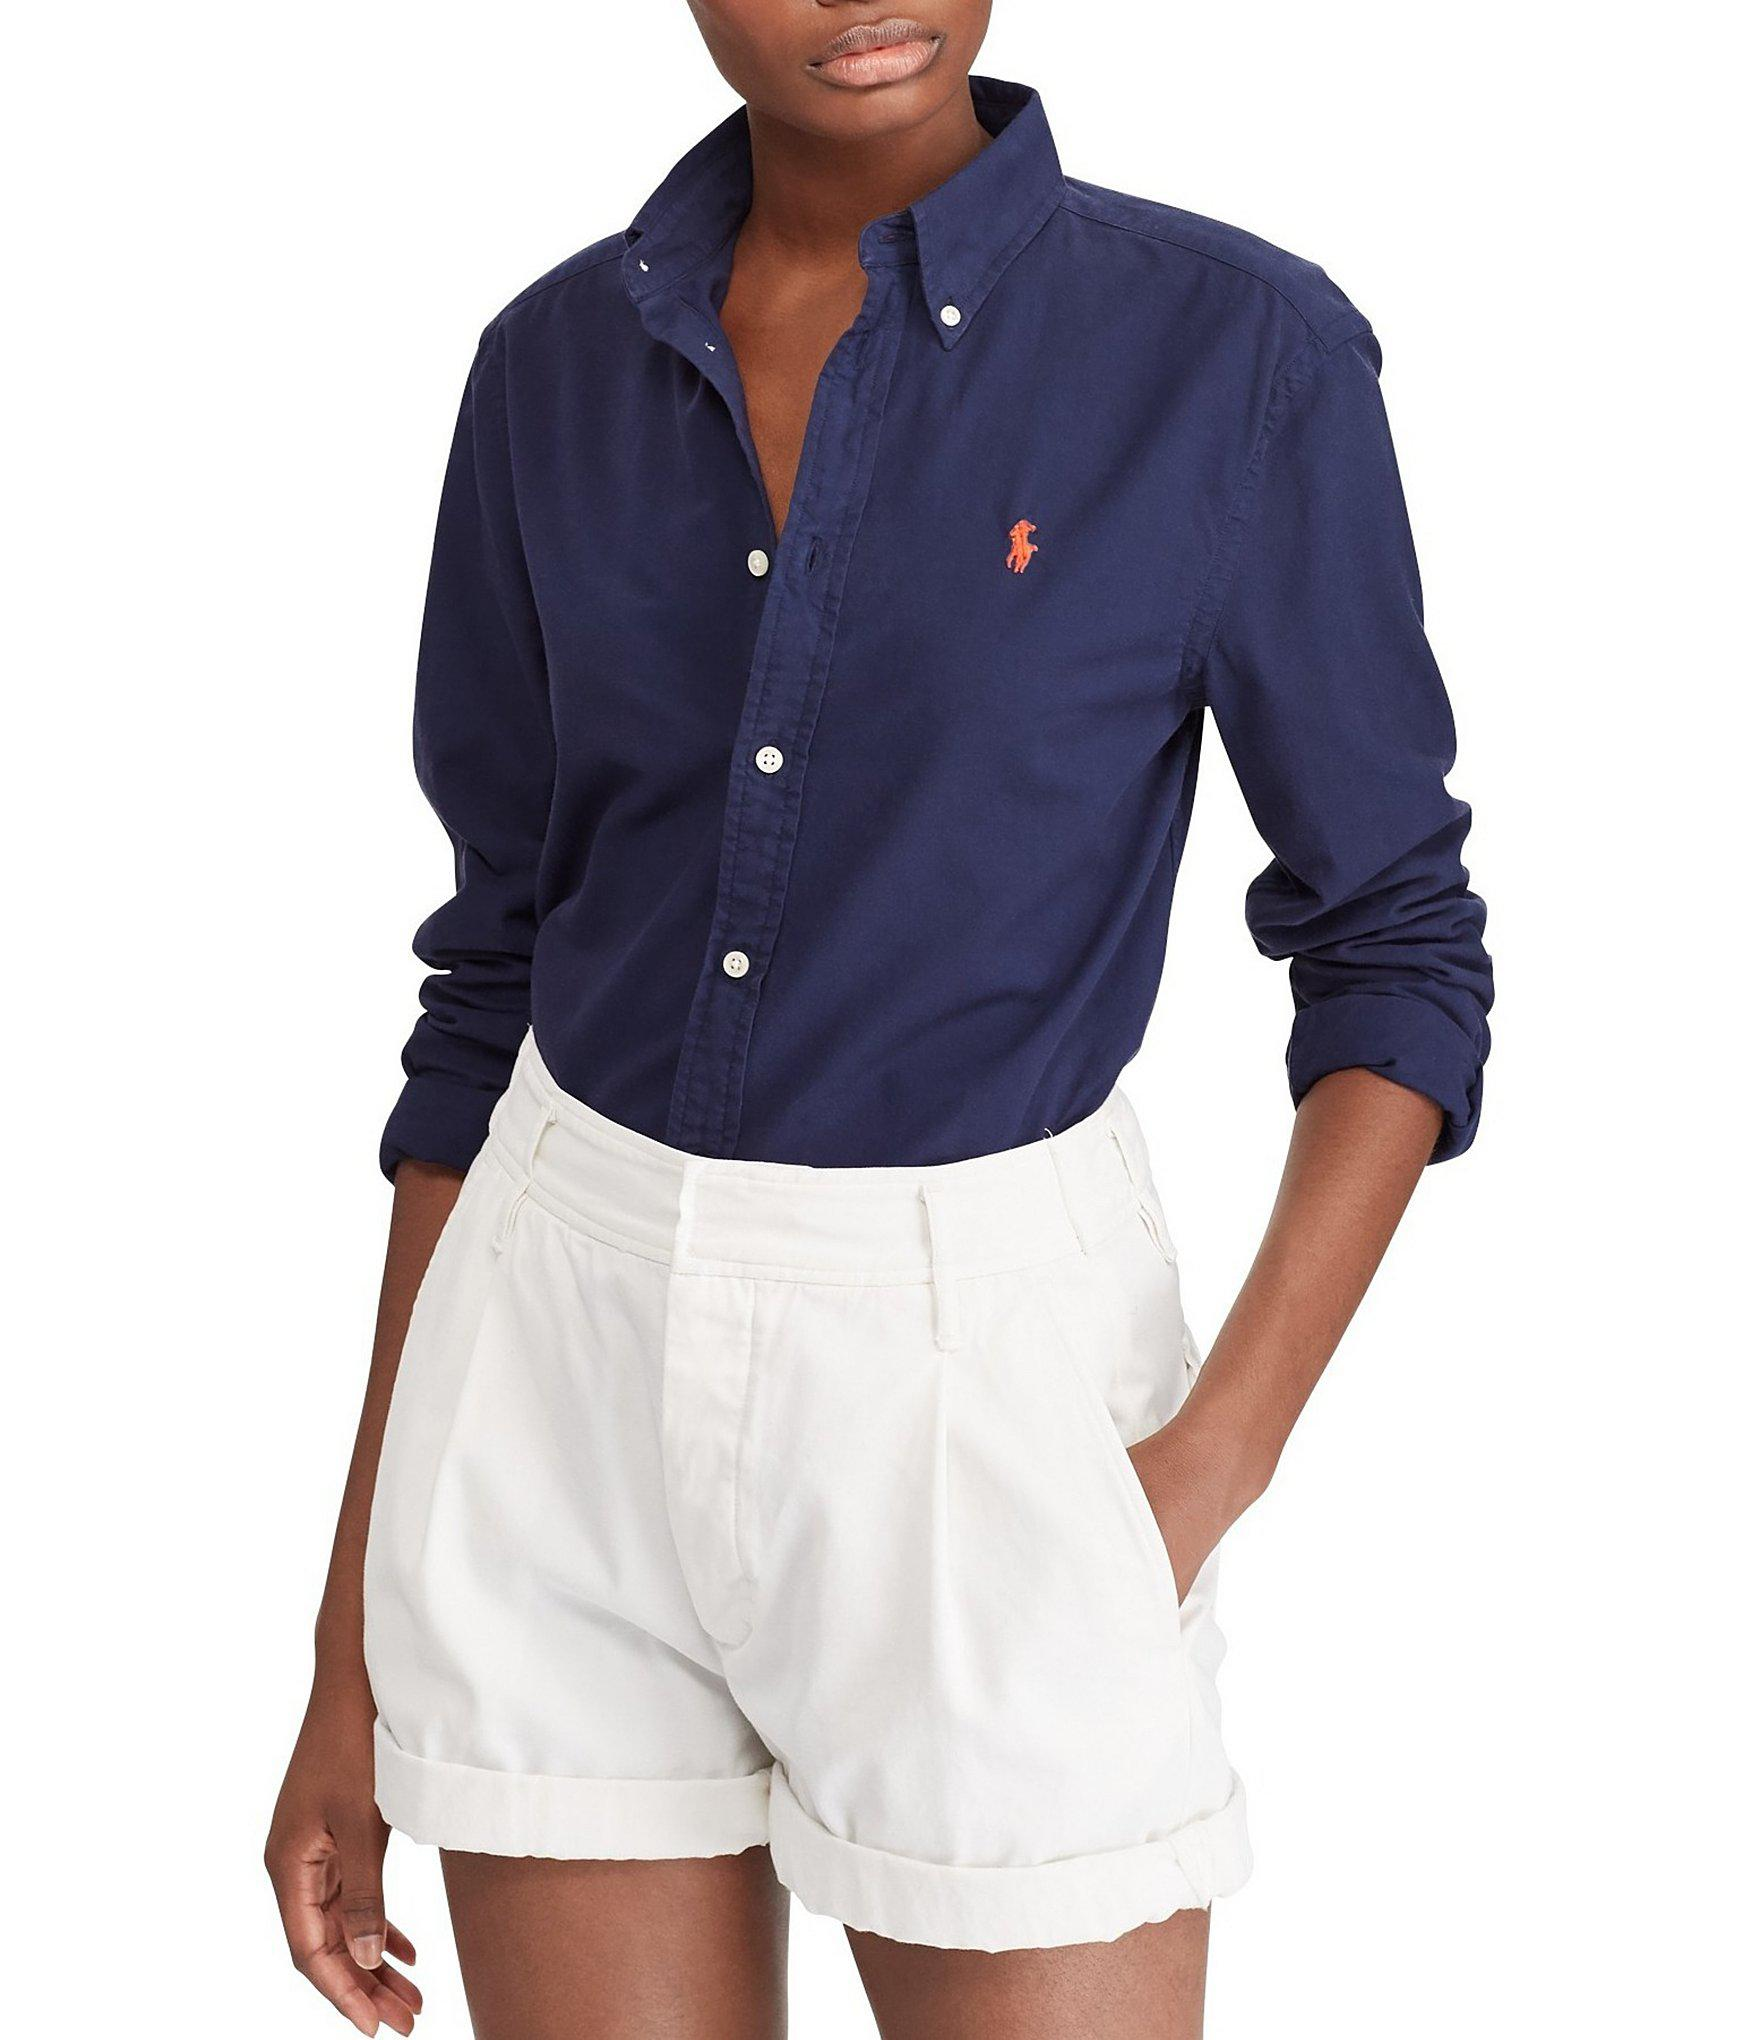 b7cdc52308aa7 ... switzerland new style polo ralph lauren. womens blue relaxed fit button  front oxford shirt 33a63